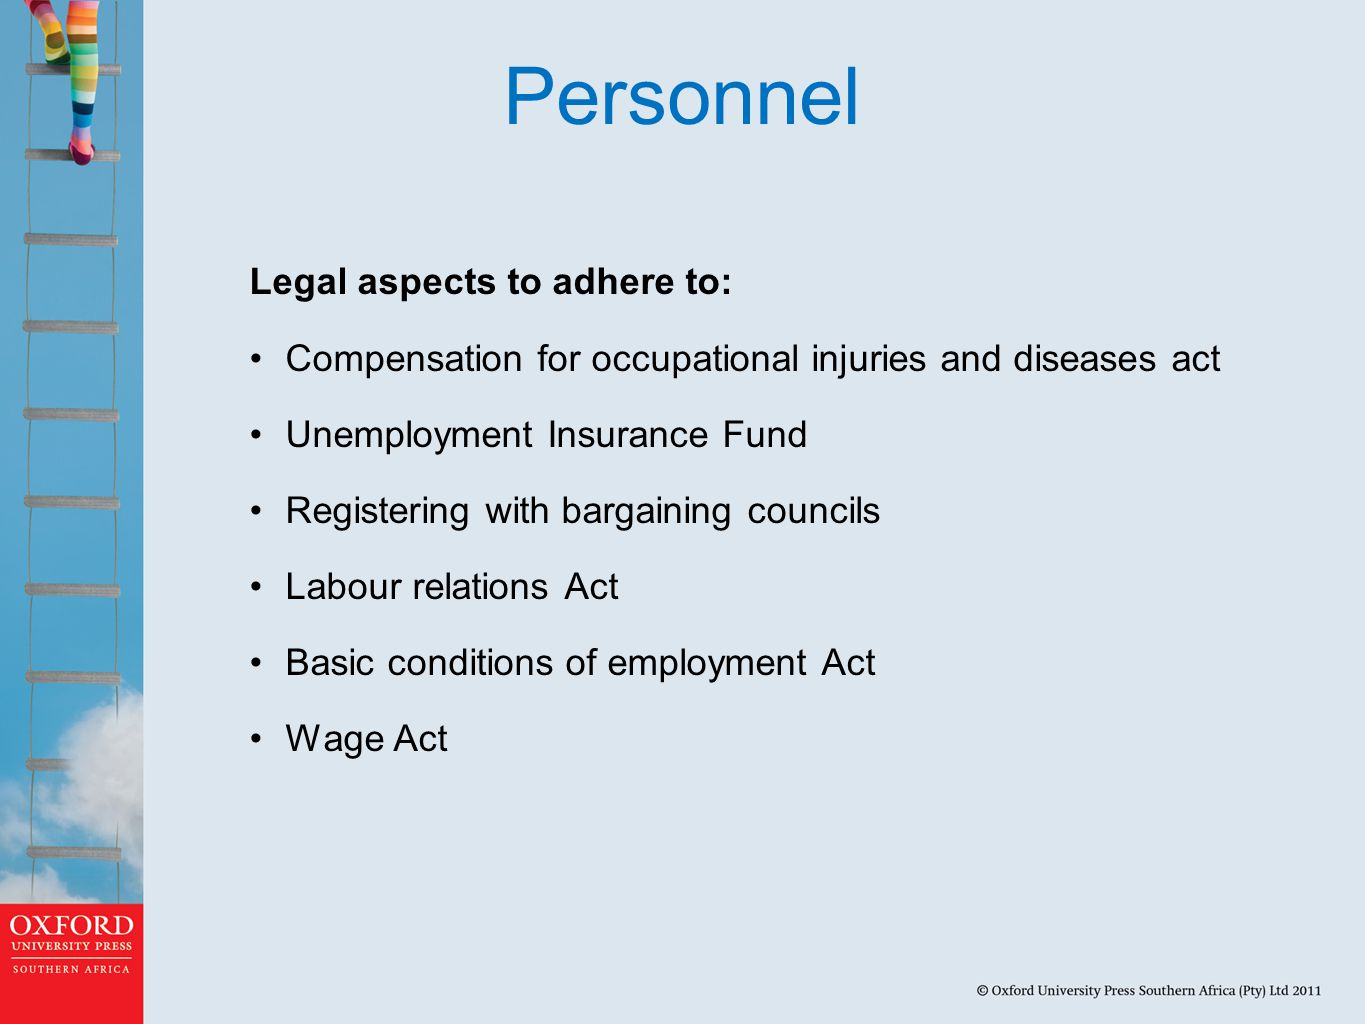 Personnel Legal aspects to adhere to: Compensation for occupational injuries and diseases act Unemployment Insurance Fund Registering with bargaining councils Labour relations Act Basic conditions of employment Act Wage Act